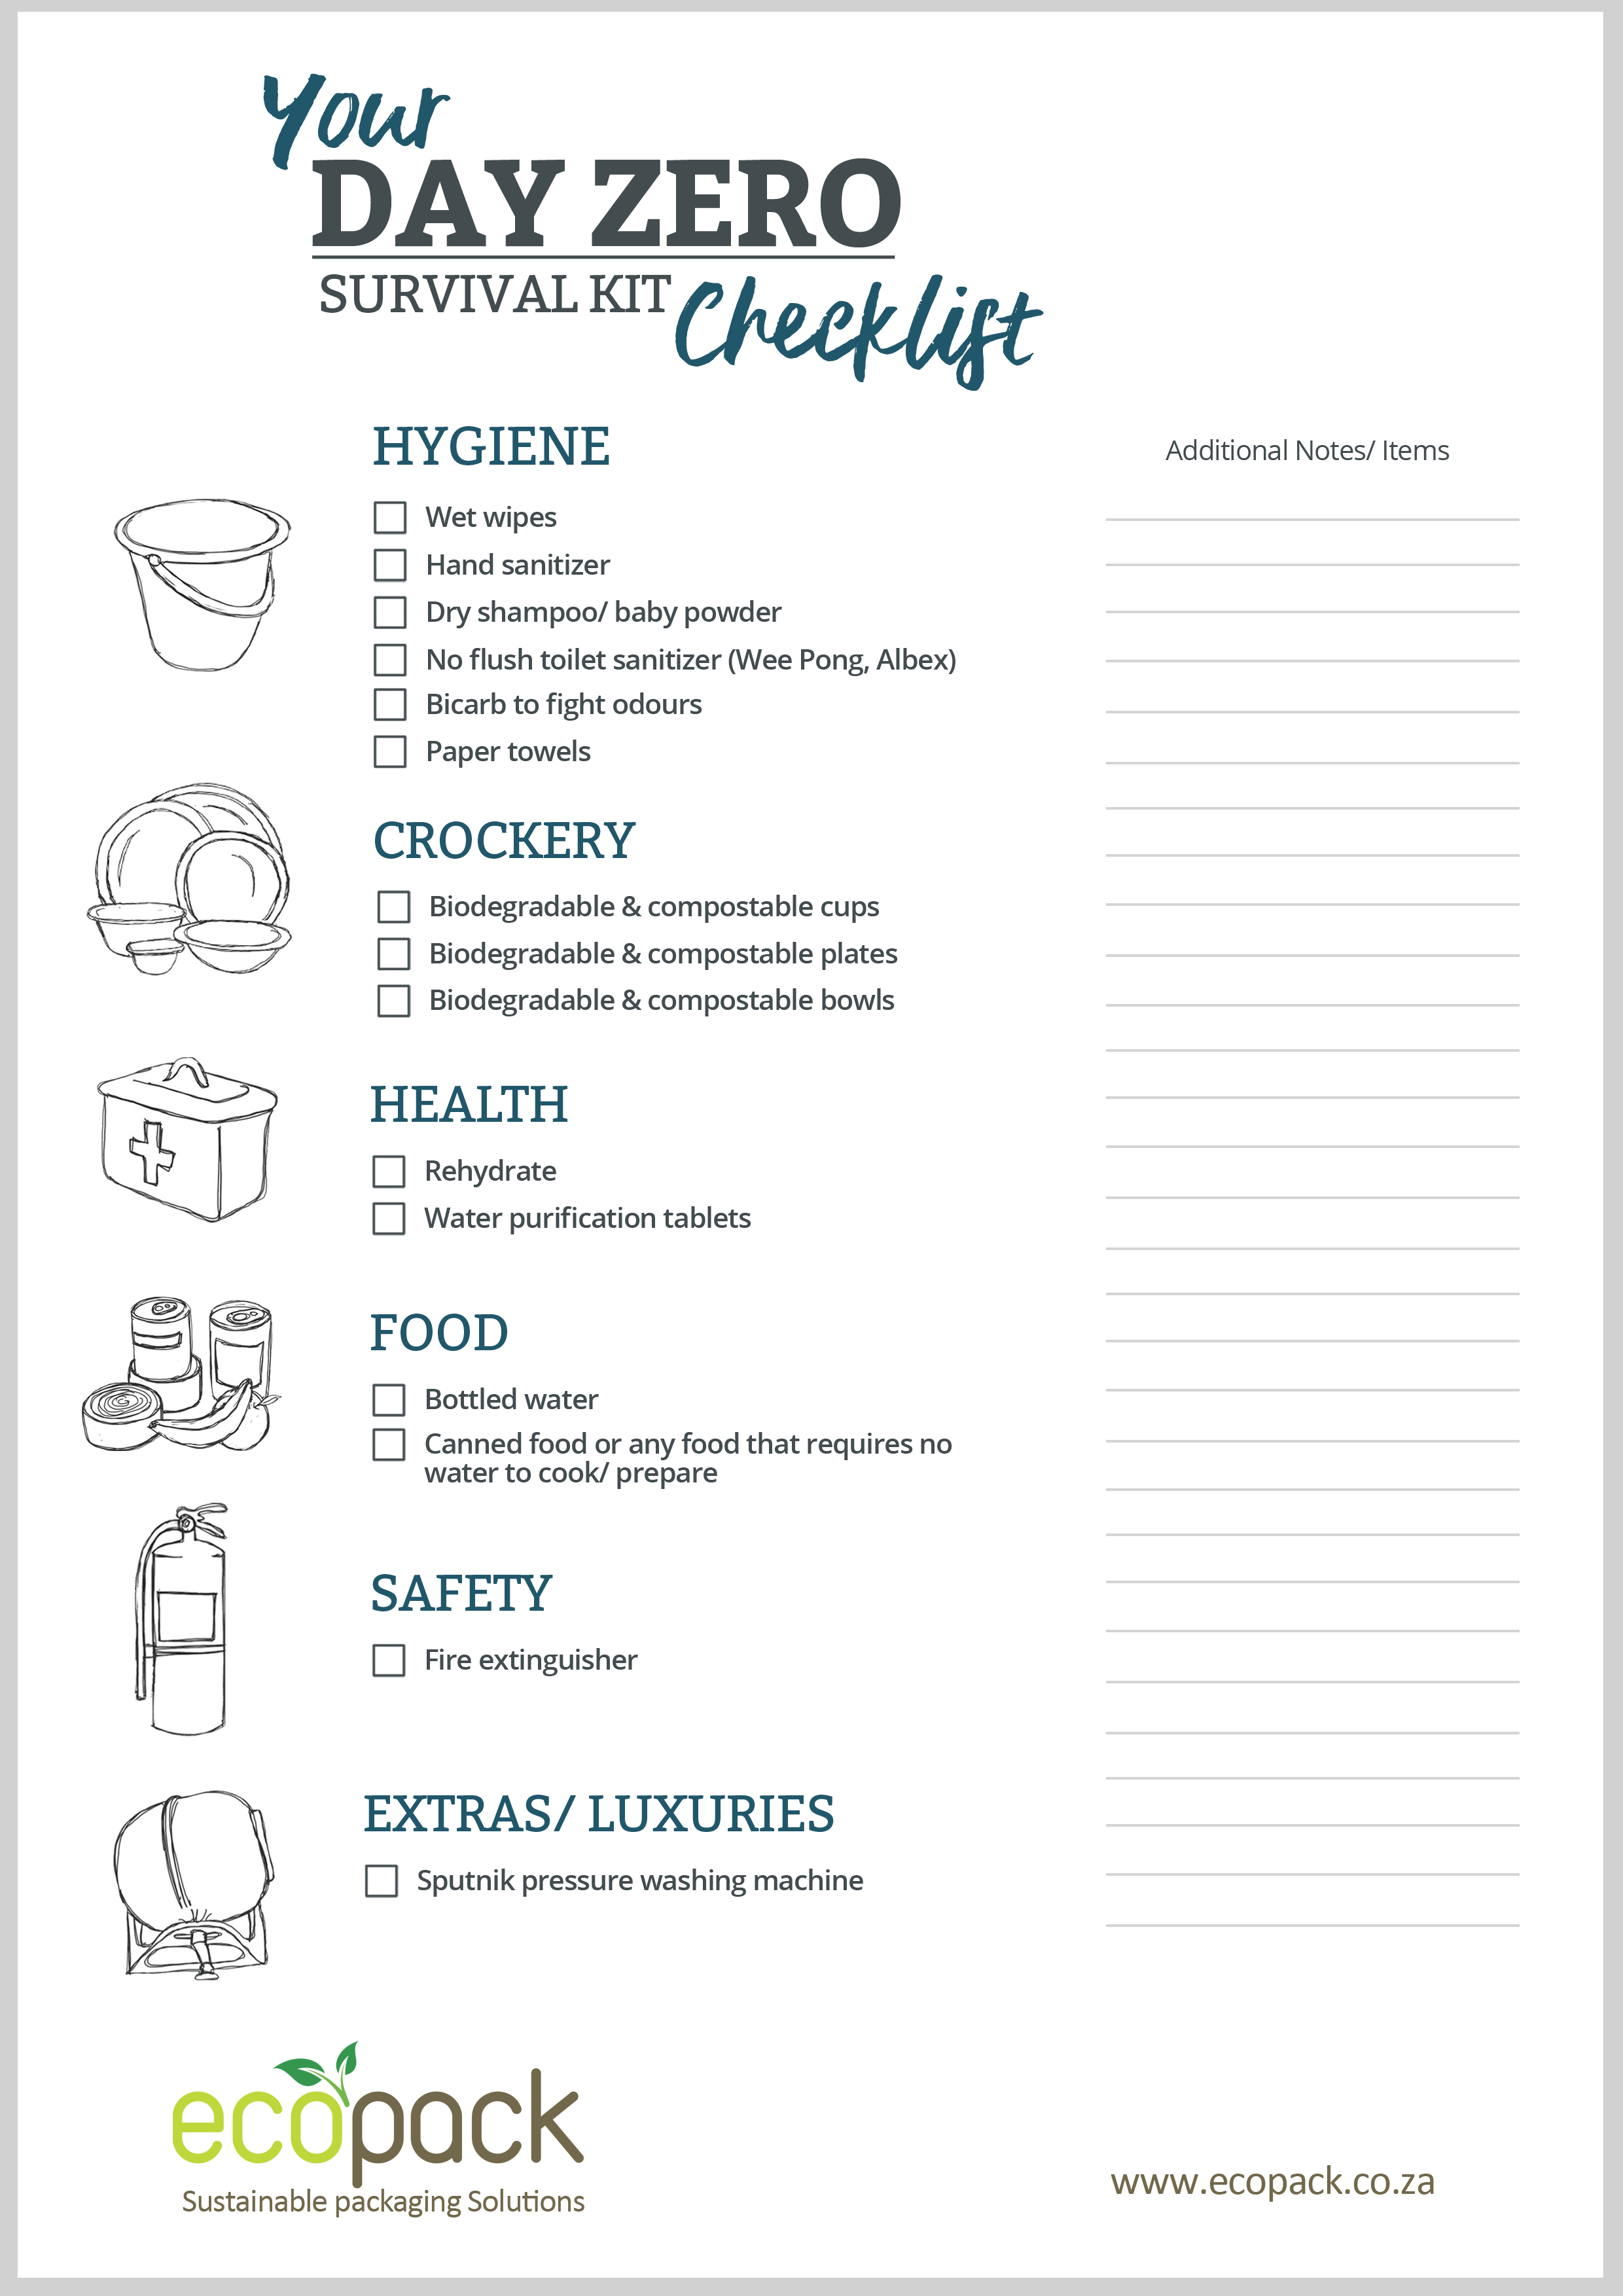 Printable Day Zero Checklist - EcoPack - South Africa